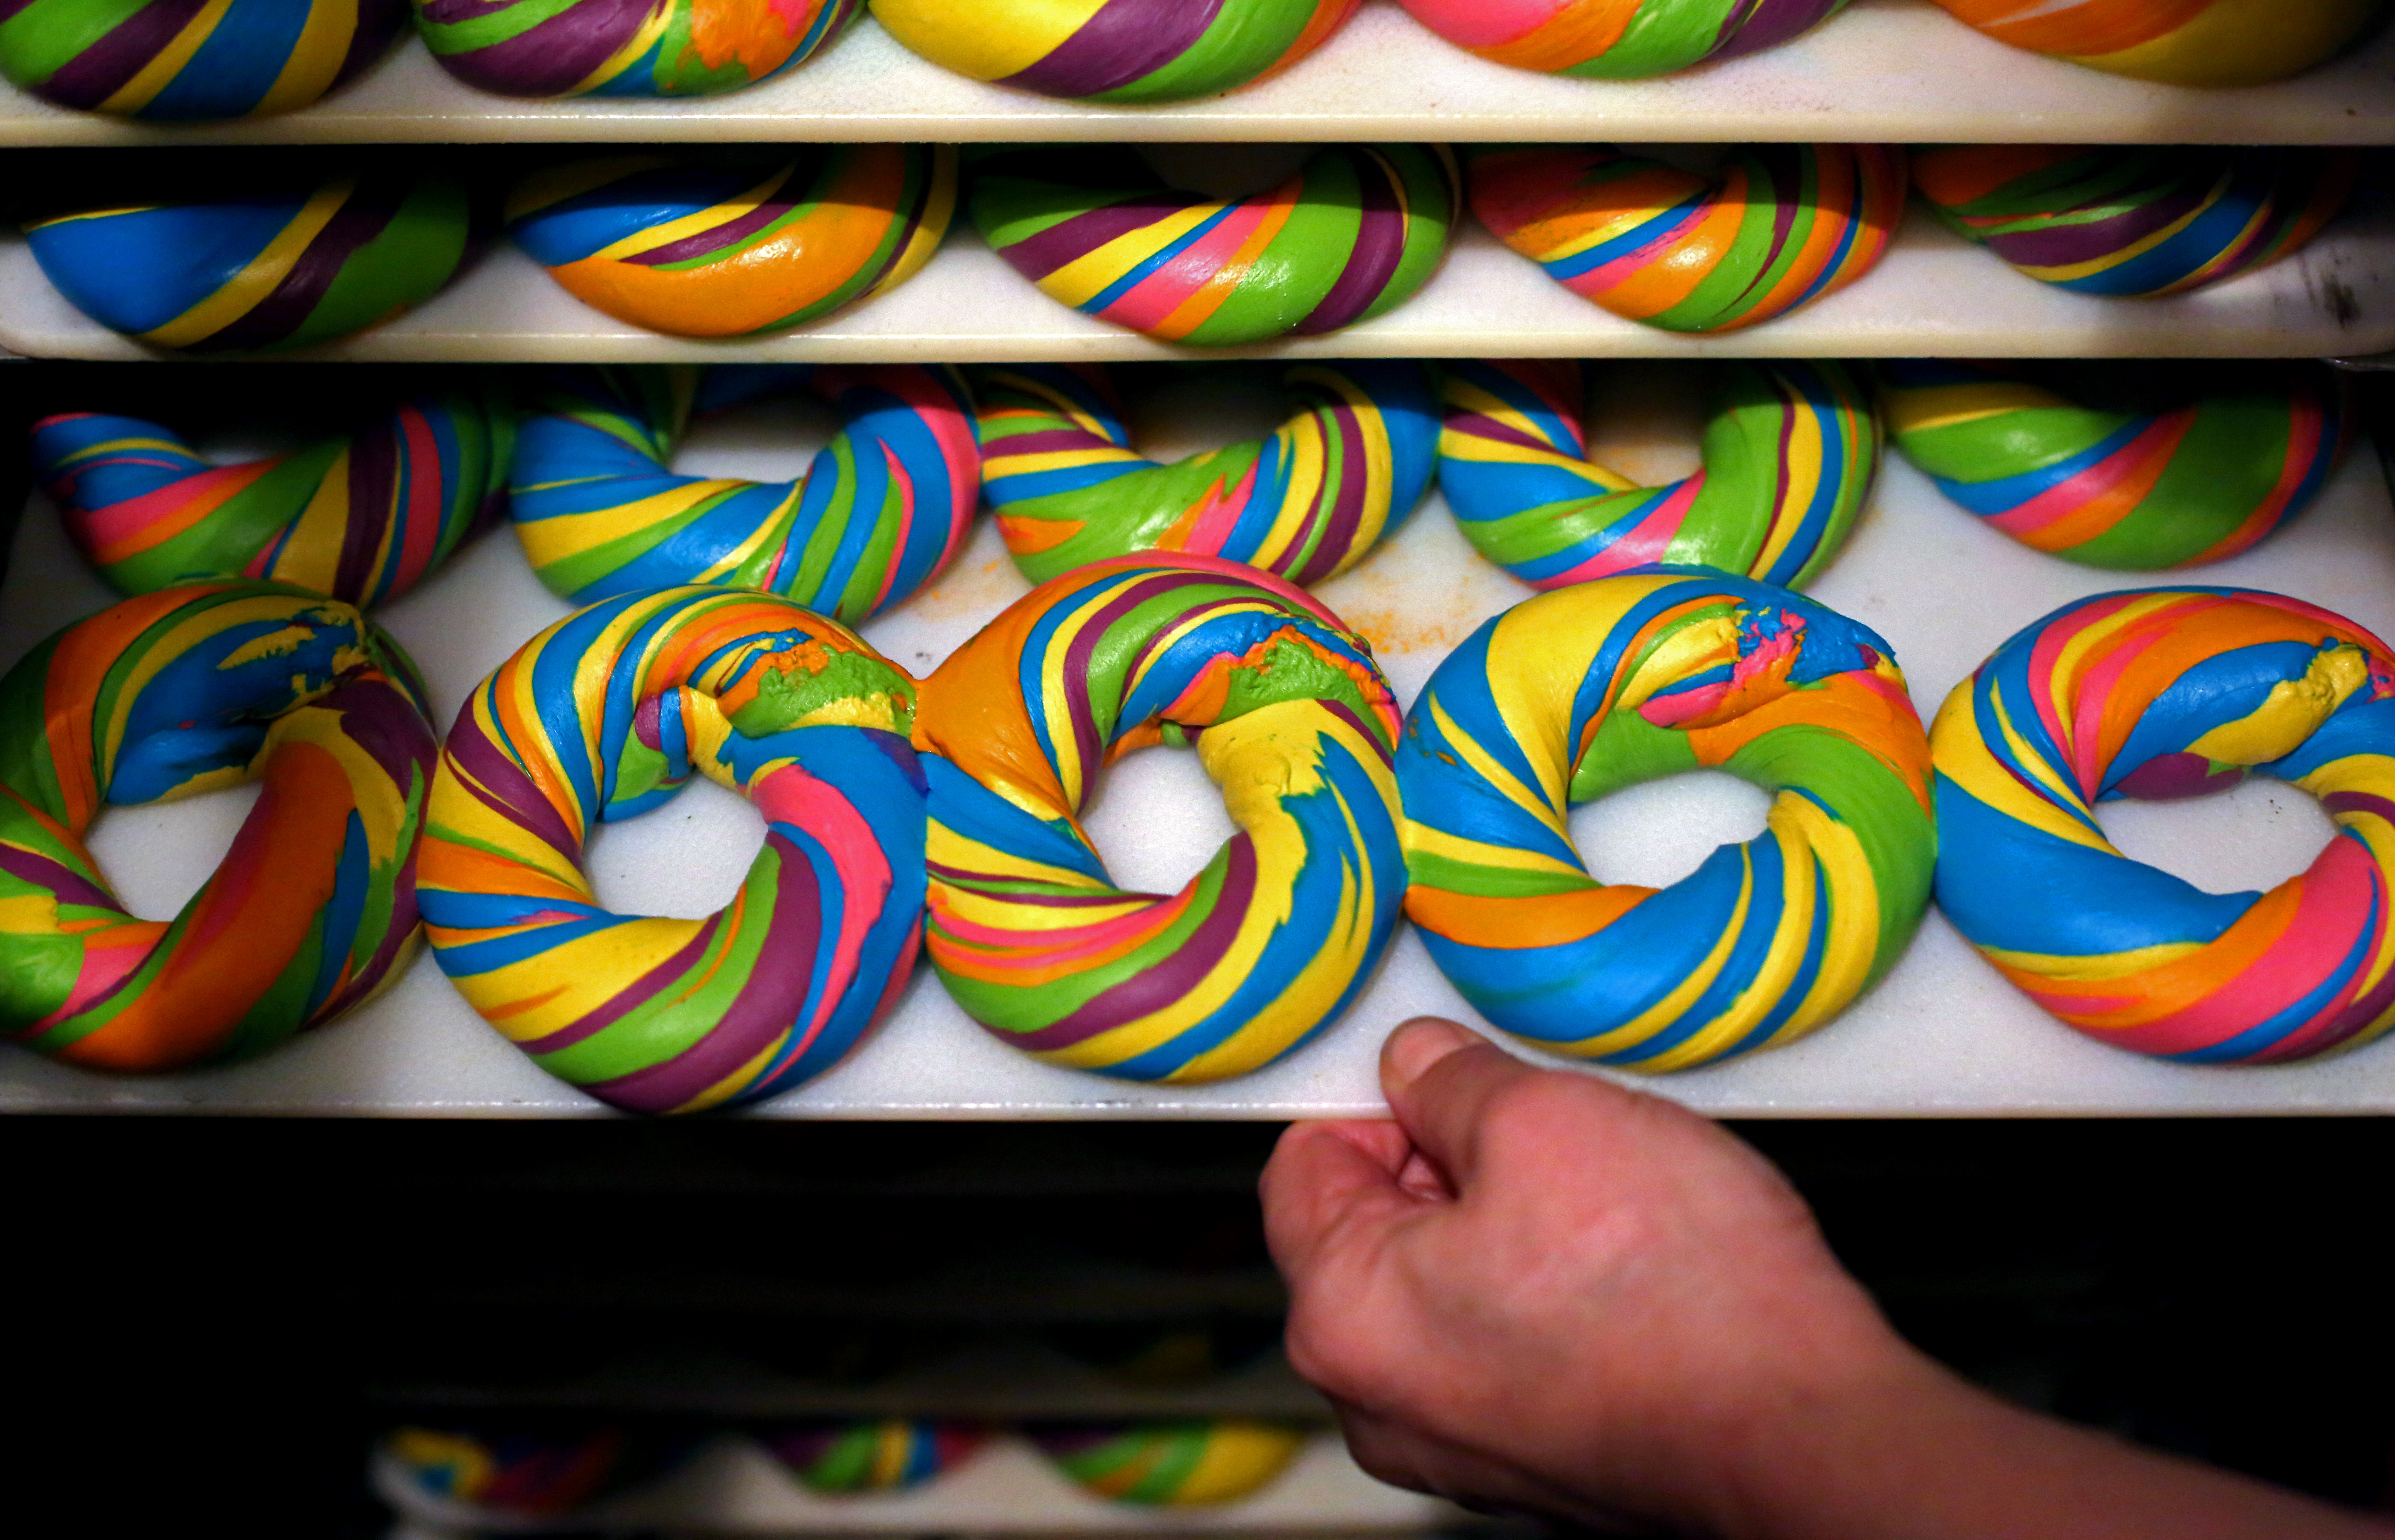 BROOKLYN, NY - APRIL 09: A tray of baked Rainbow Bagels is seen